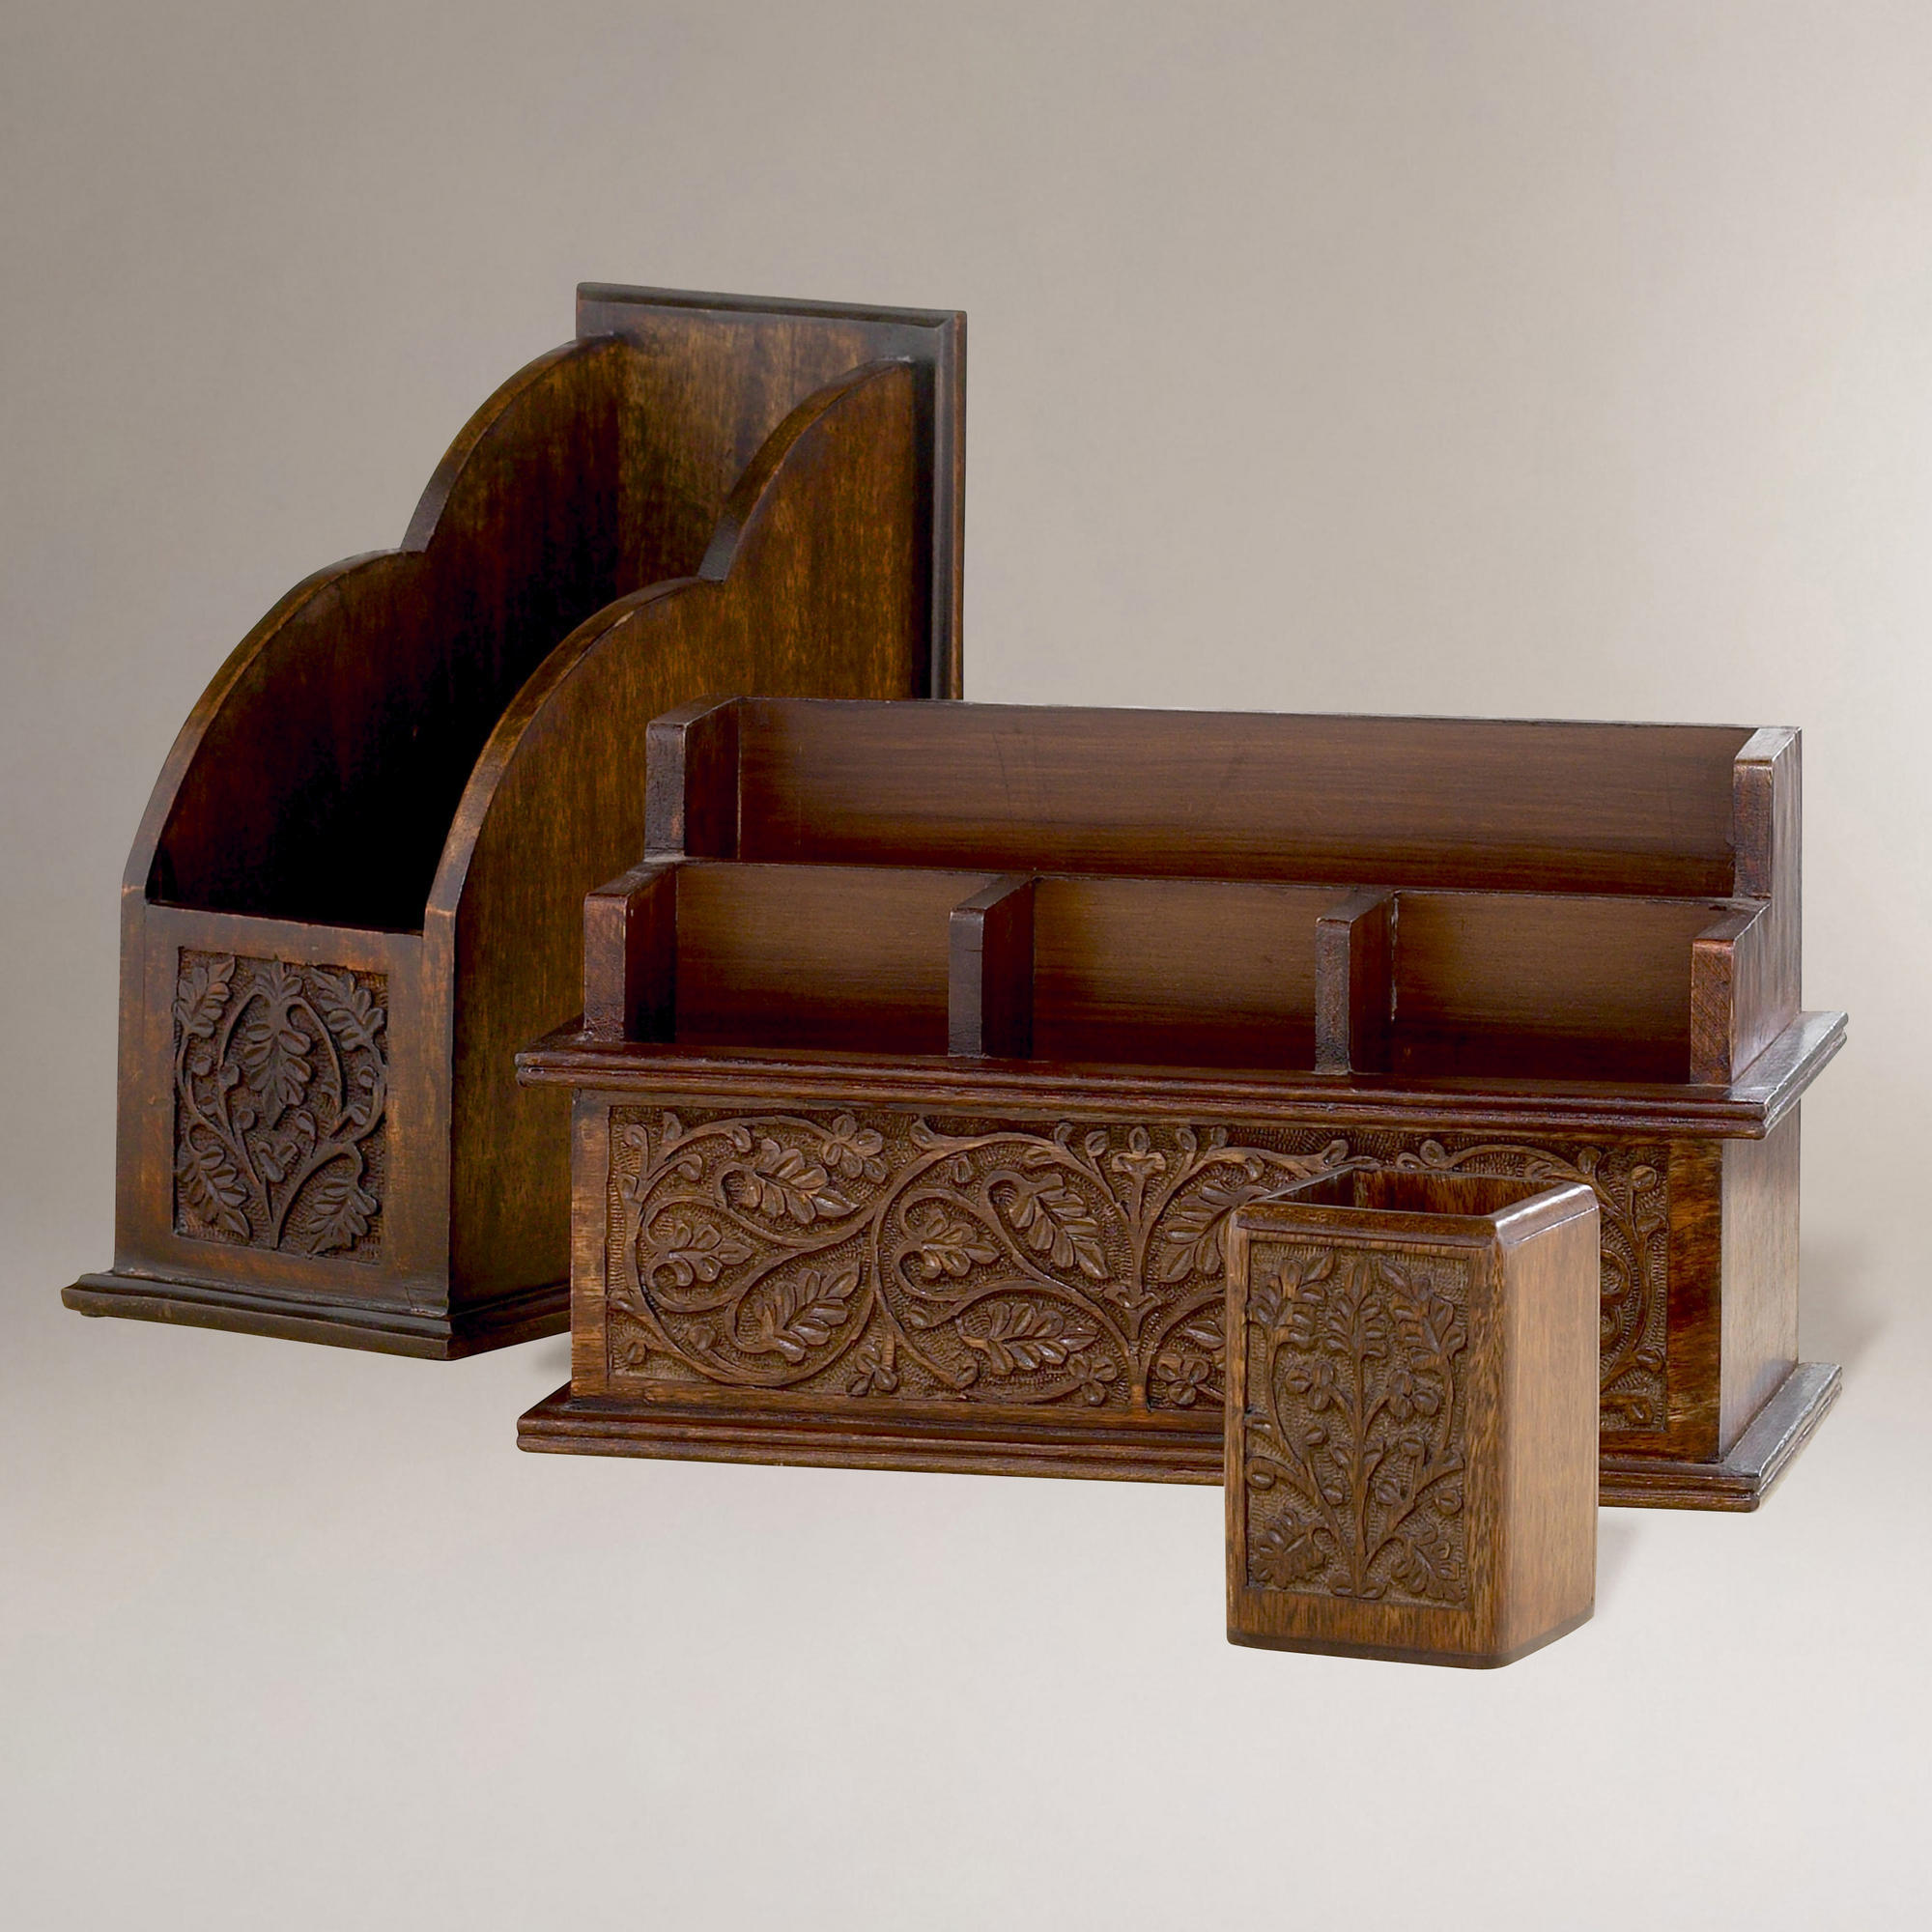 Carved wood desk organizers world from cost plus world market - Wooden desk organizers ...